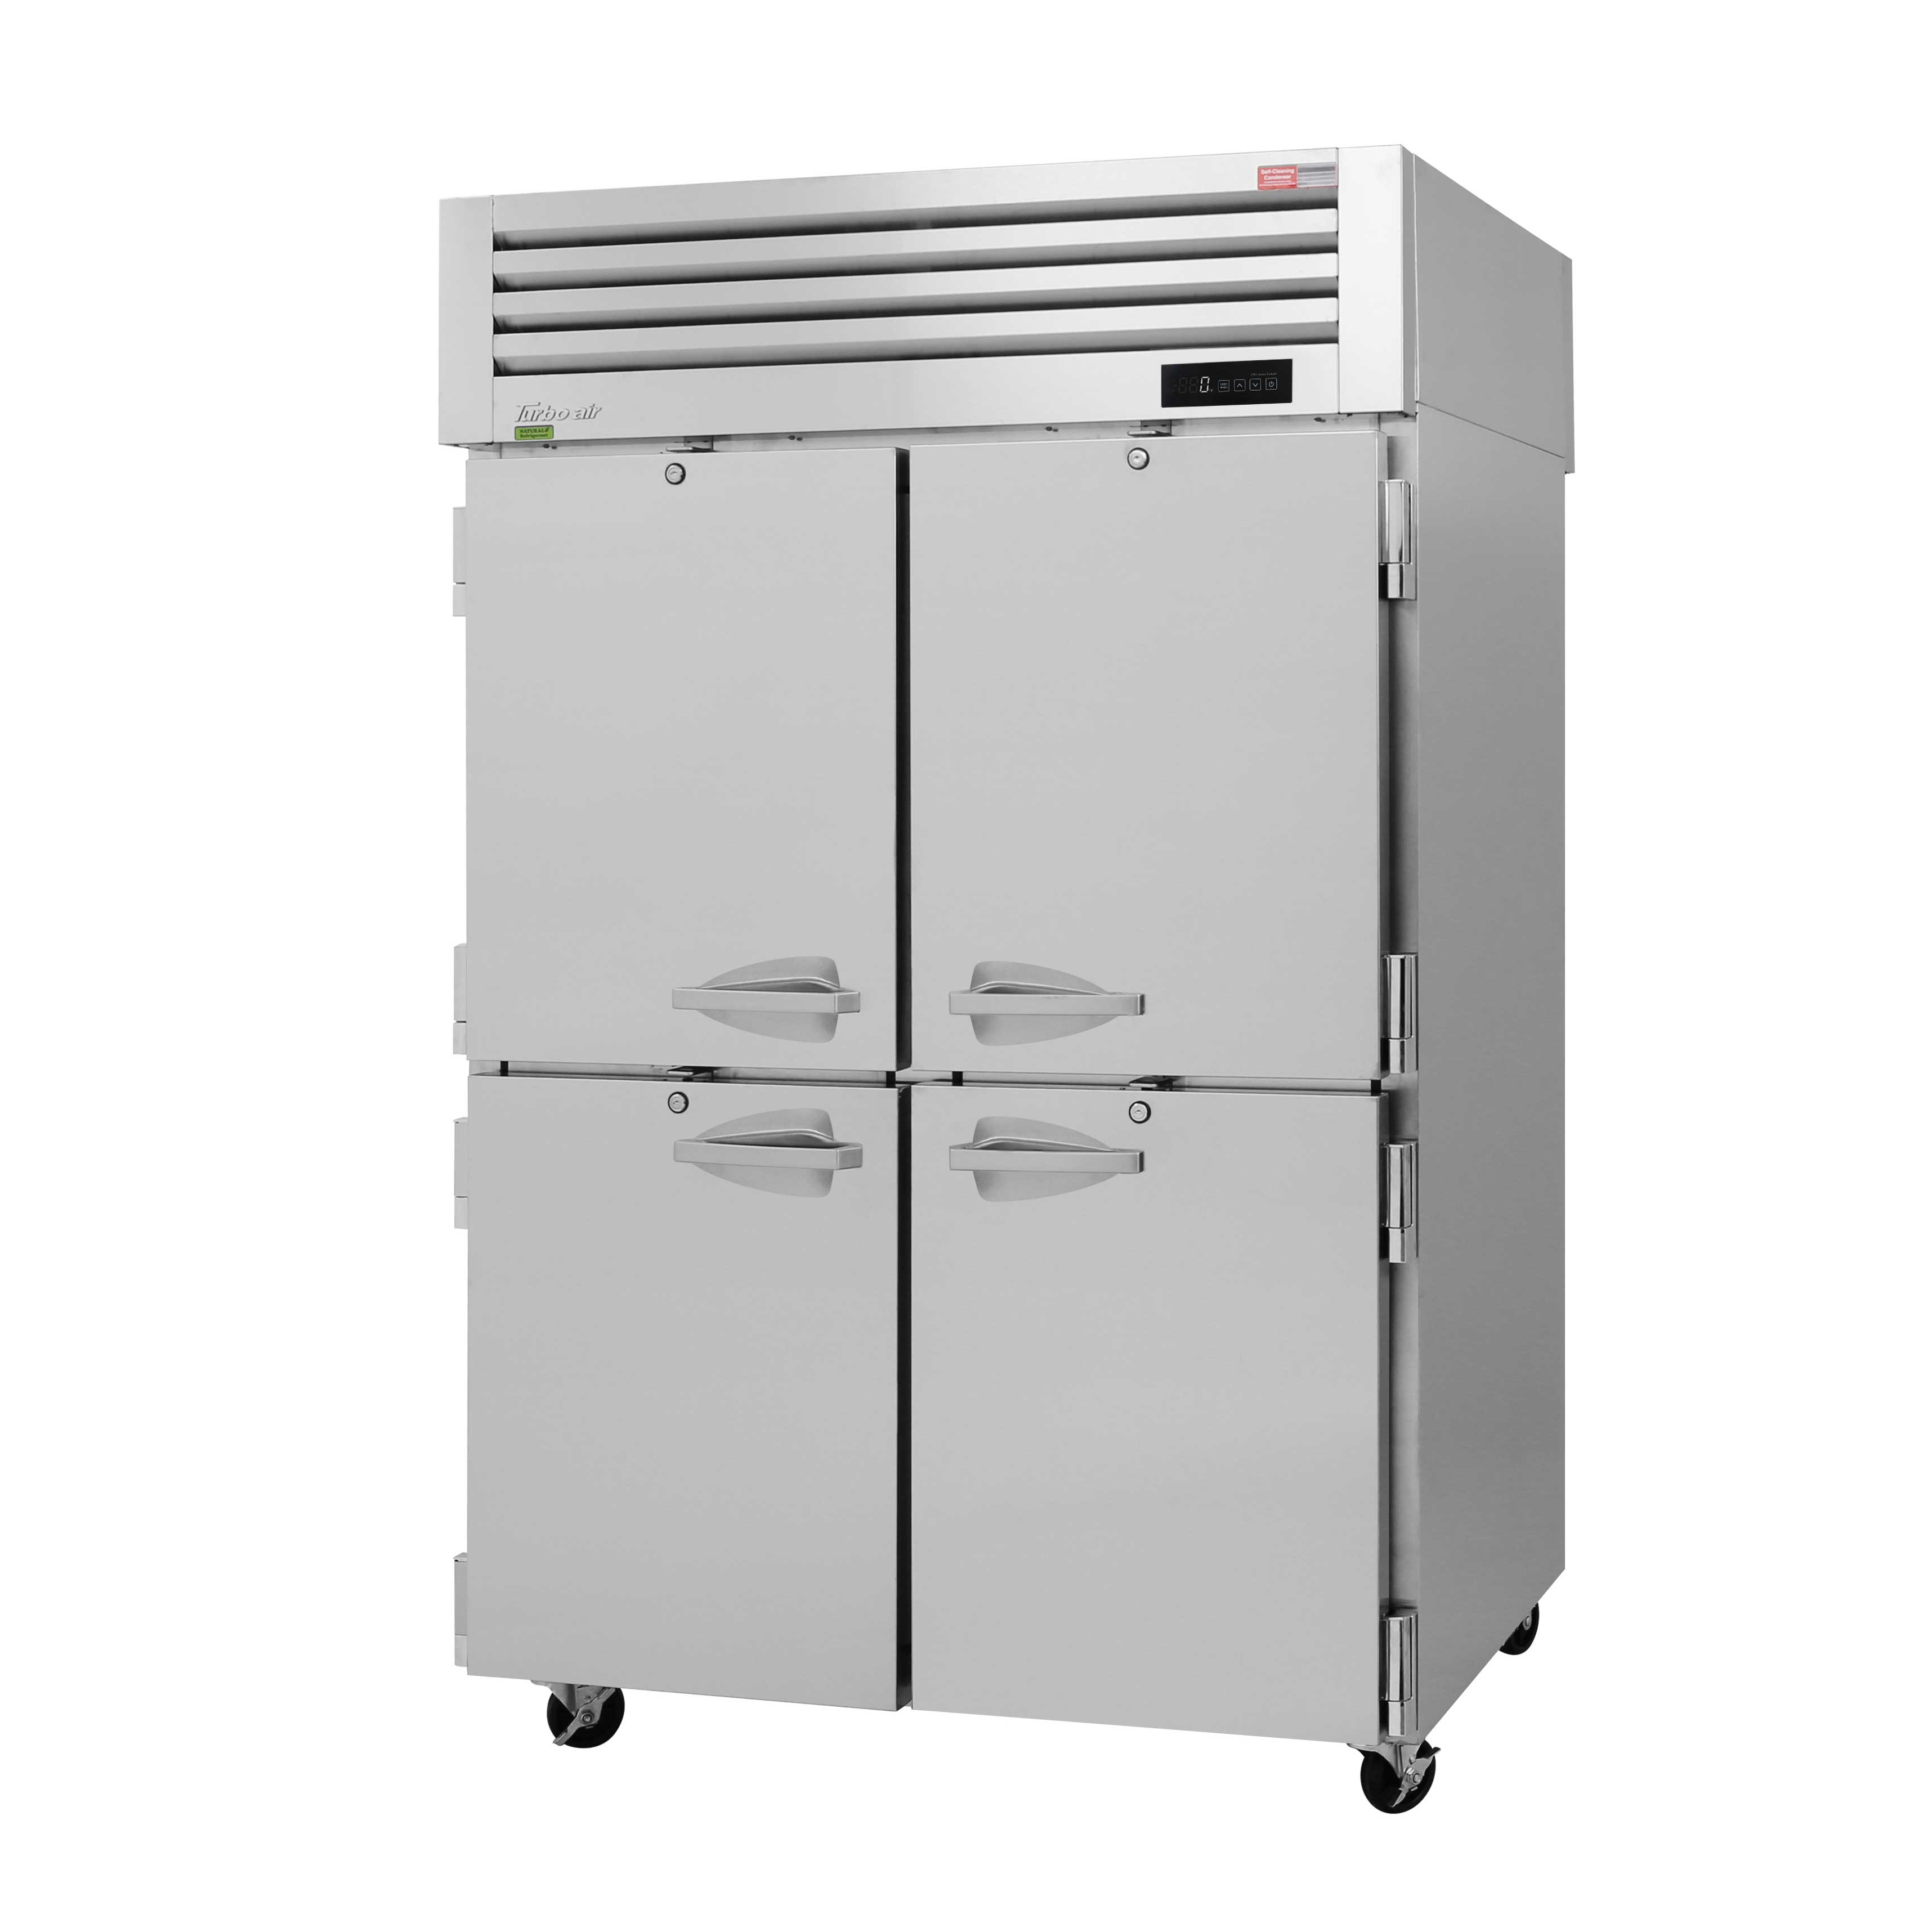 Turbo Air PRO-50-4F-N freezer, reach-in